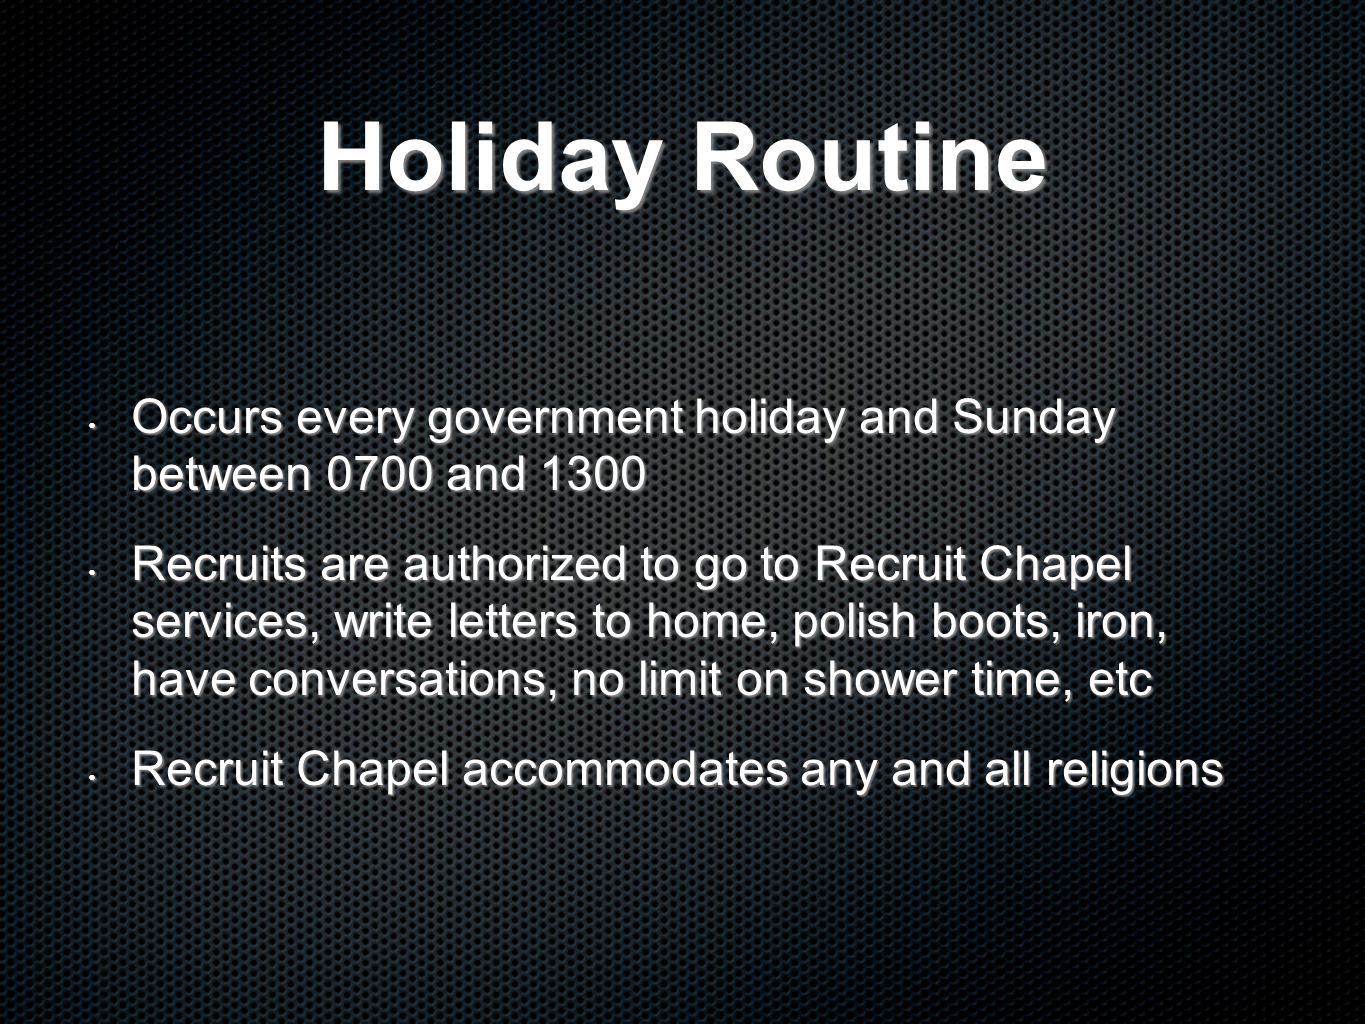 Holiday Routine Occurs every government holiday and Sunday between 0700 and 1300.